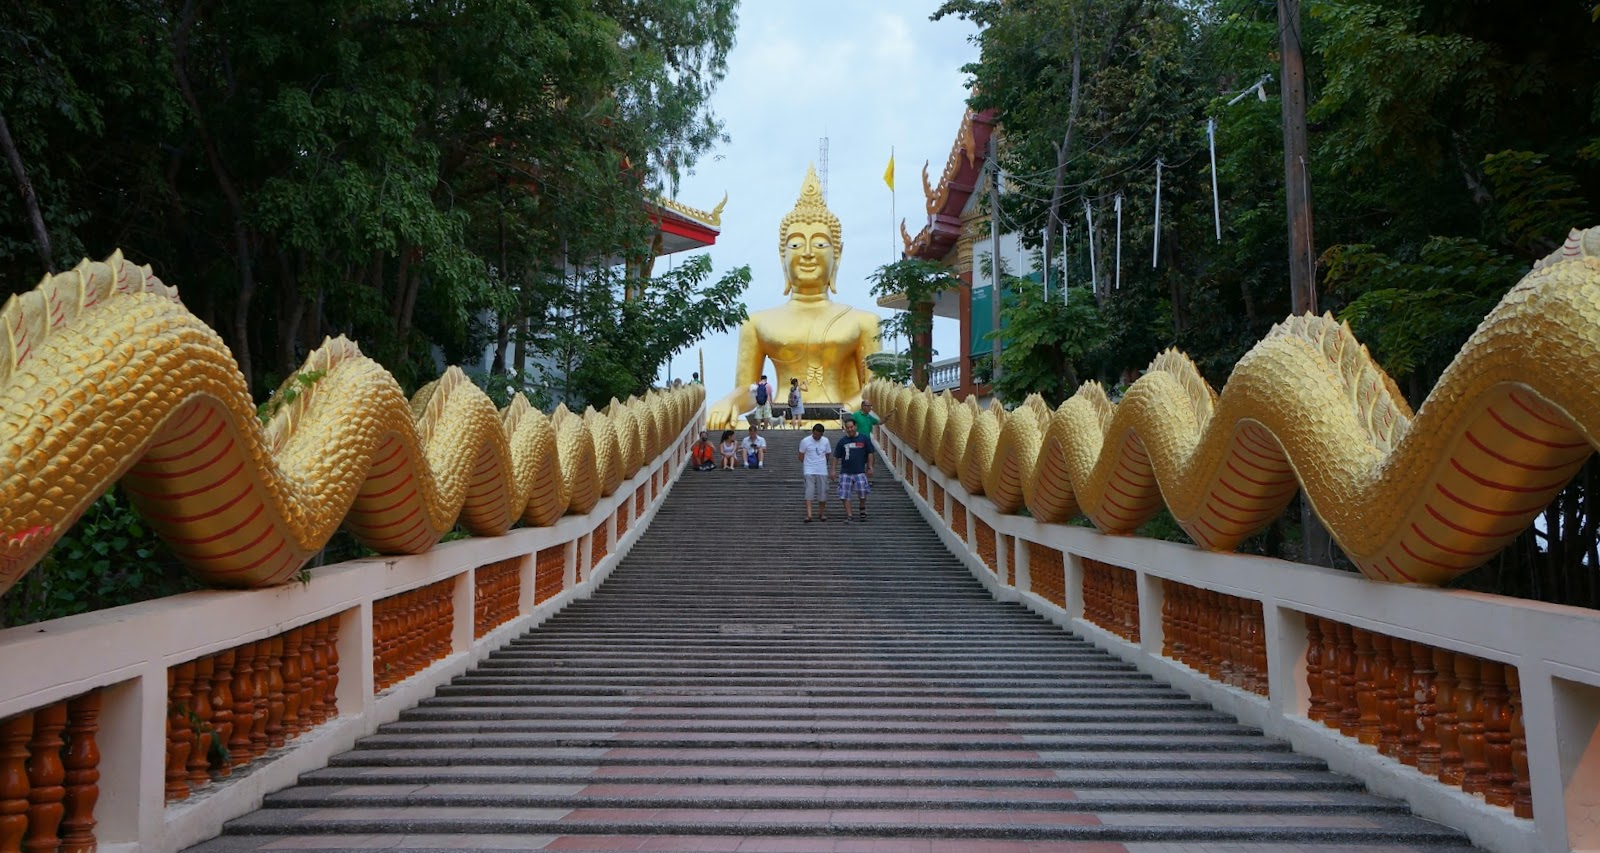 Stairway to Wat Phra Yai. You can get a pretty good view of Jomtien at the top